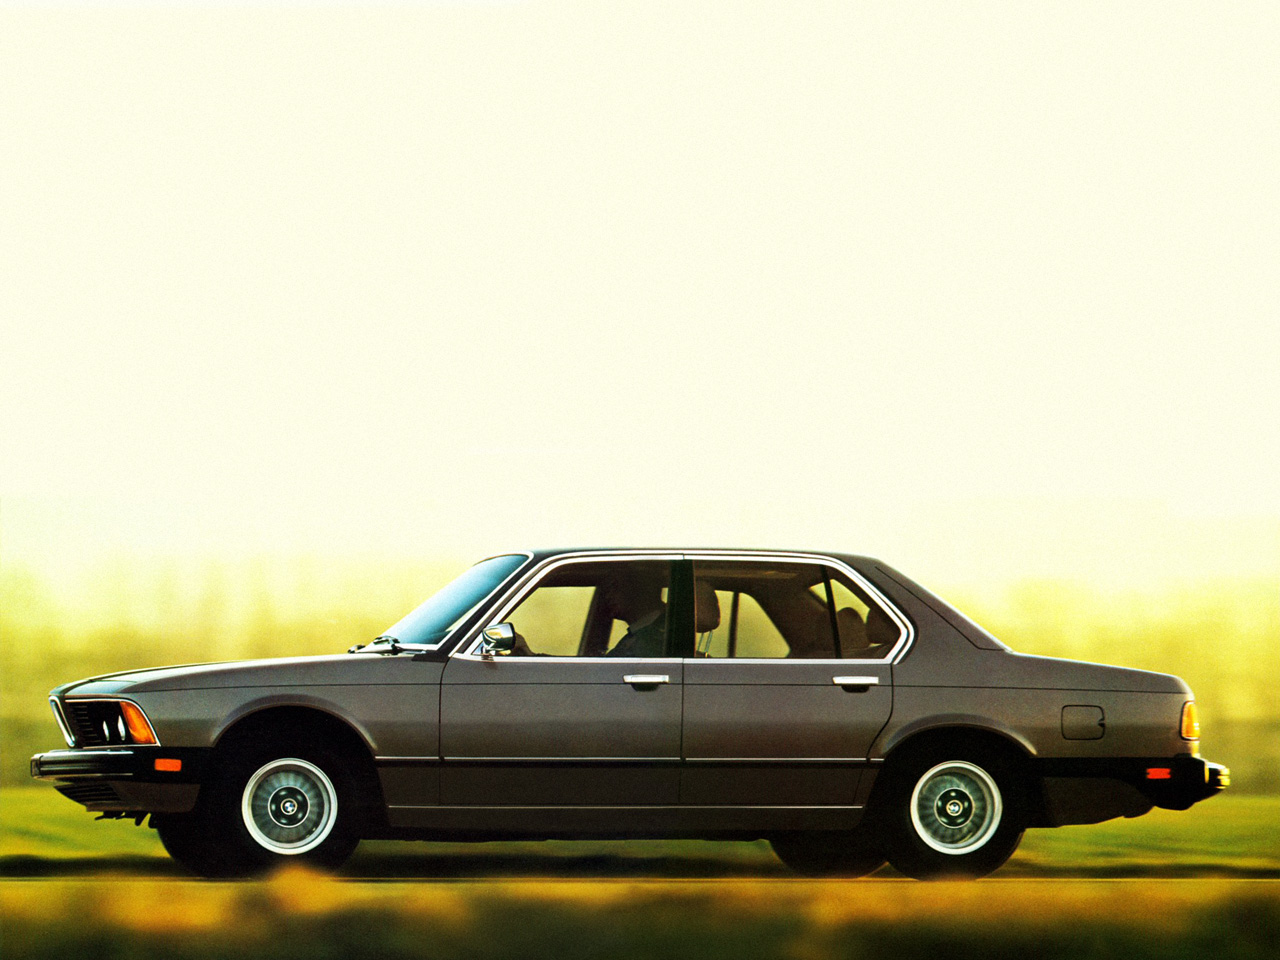 BMW 7 series 733i 1977 photo - 6